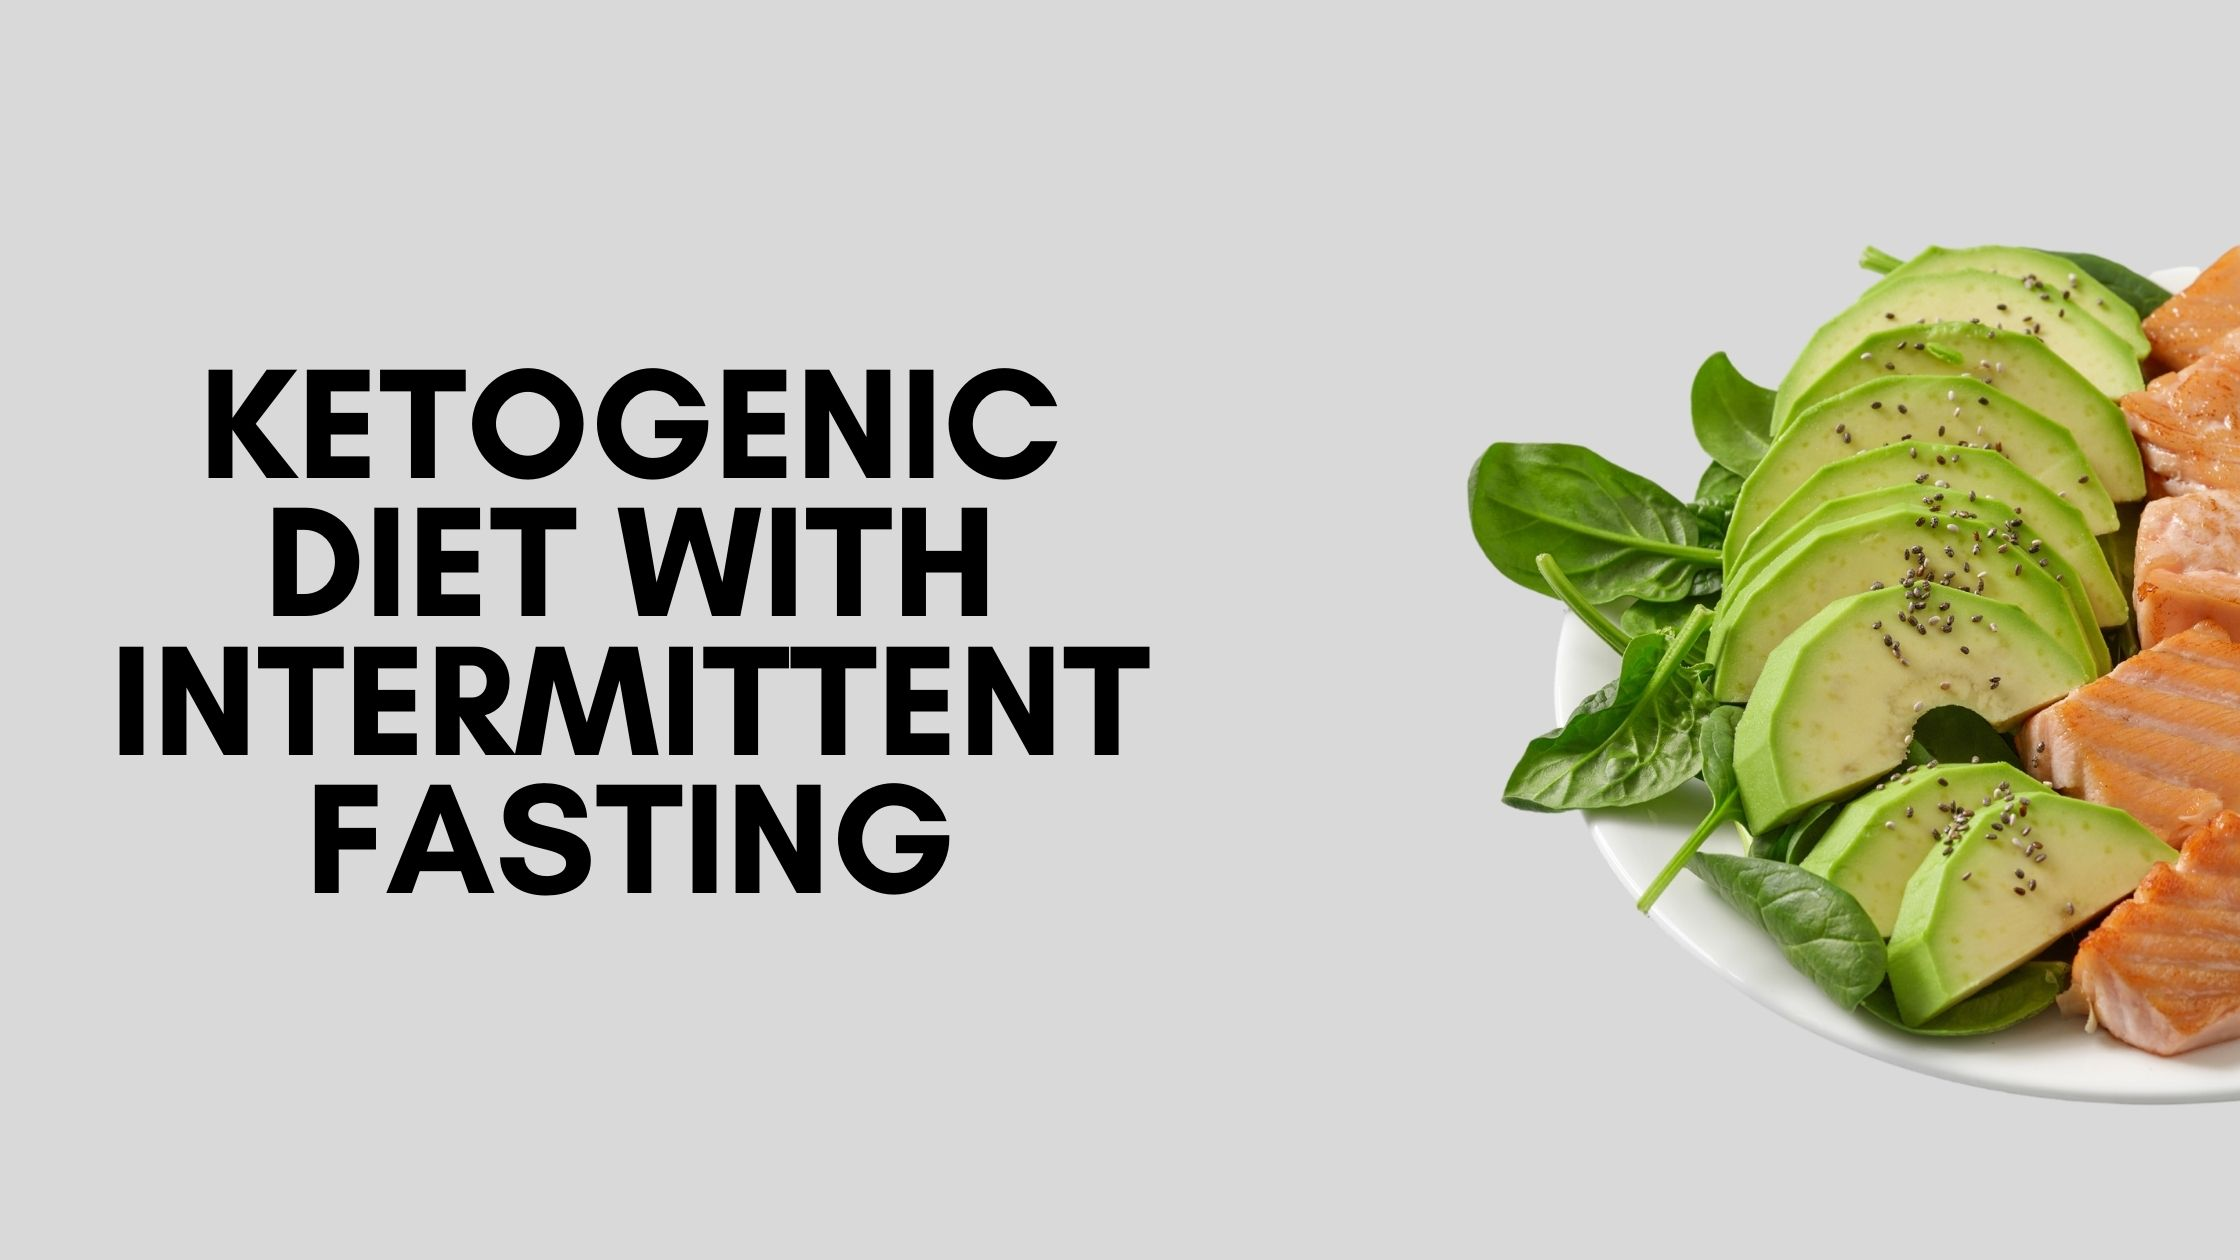 Combining the Ketogenic Diet with Intermittent Fasting